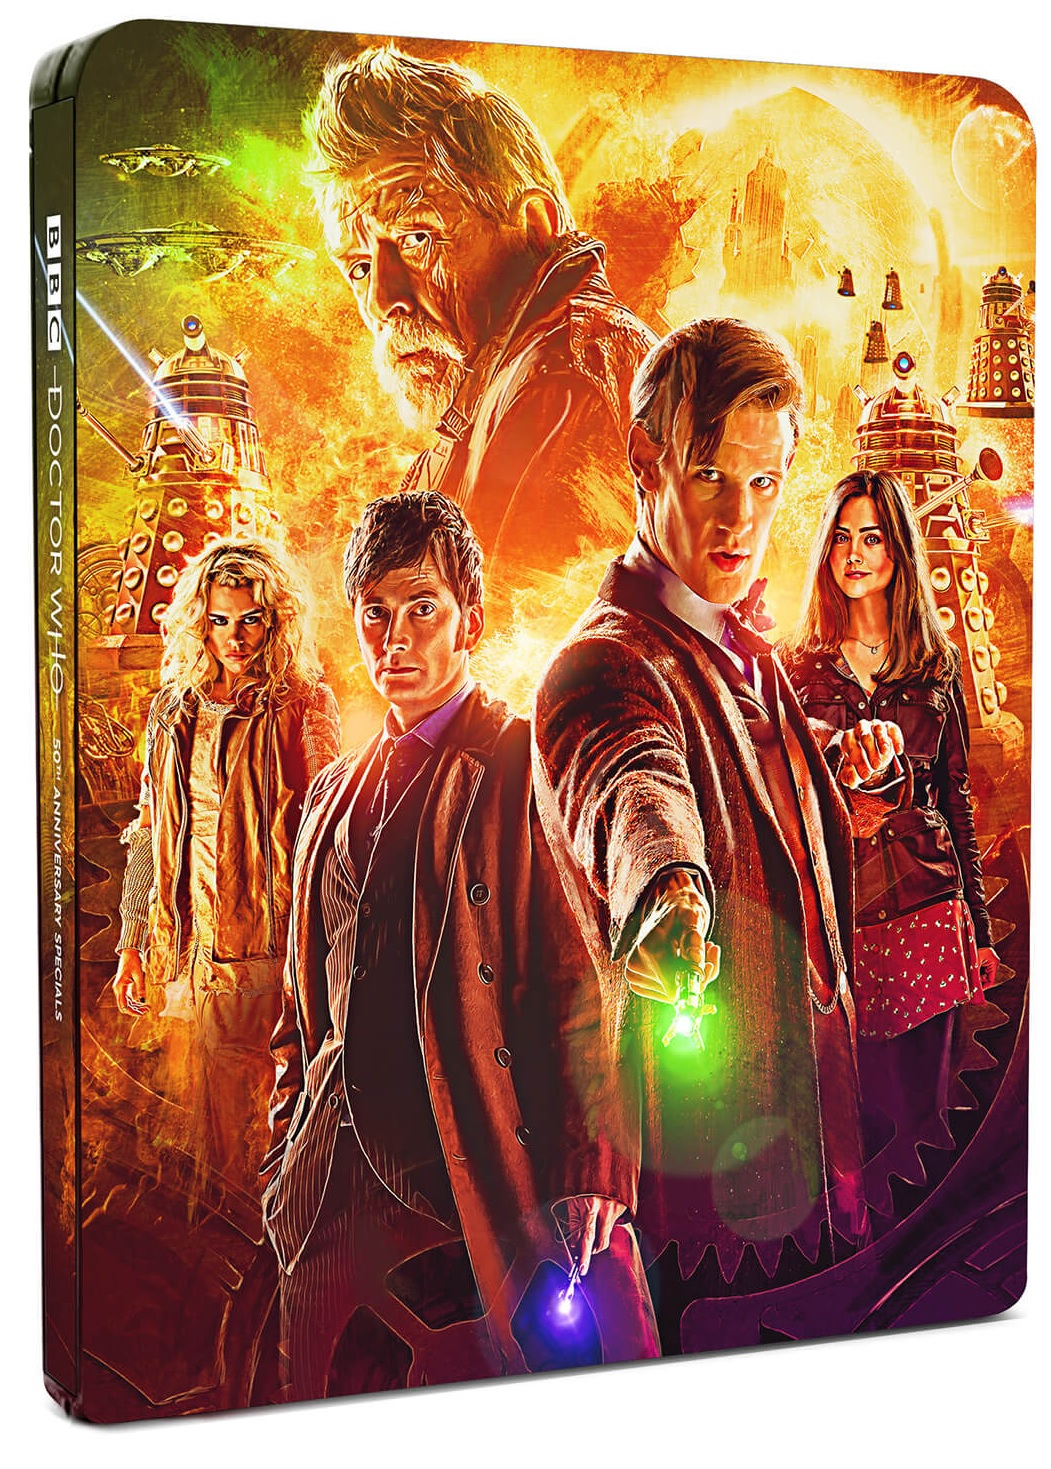 Coming Soon: Doctor Who Limited Edition 50th Anniversary Steelbook